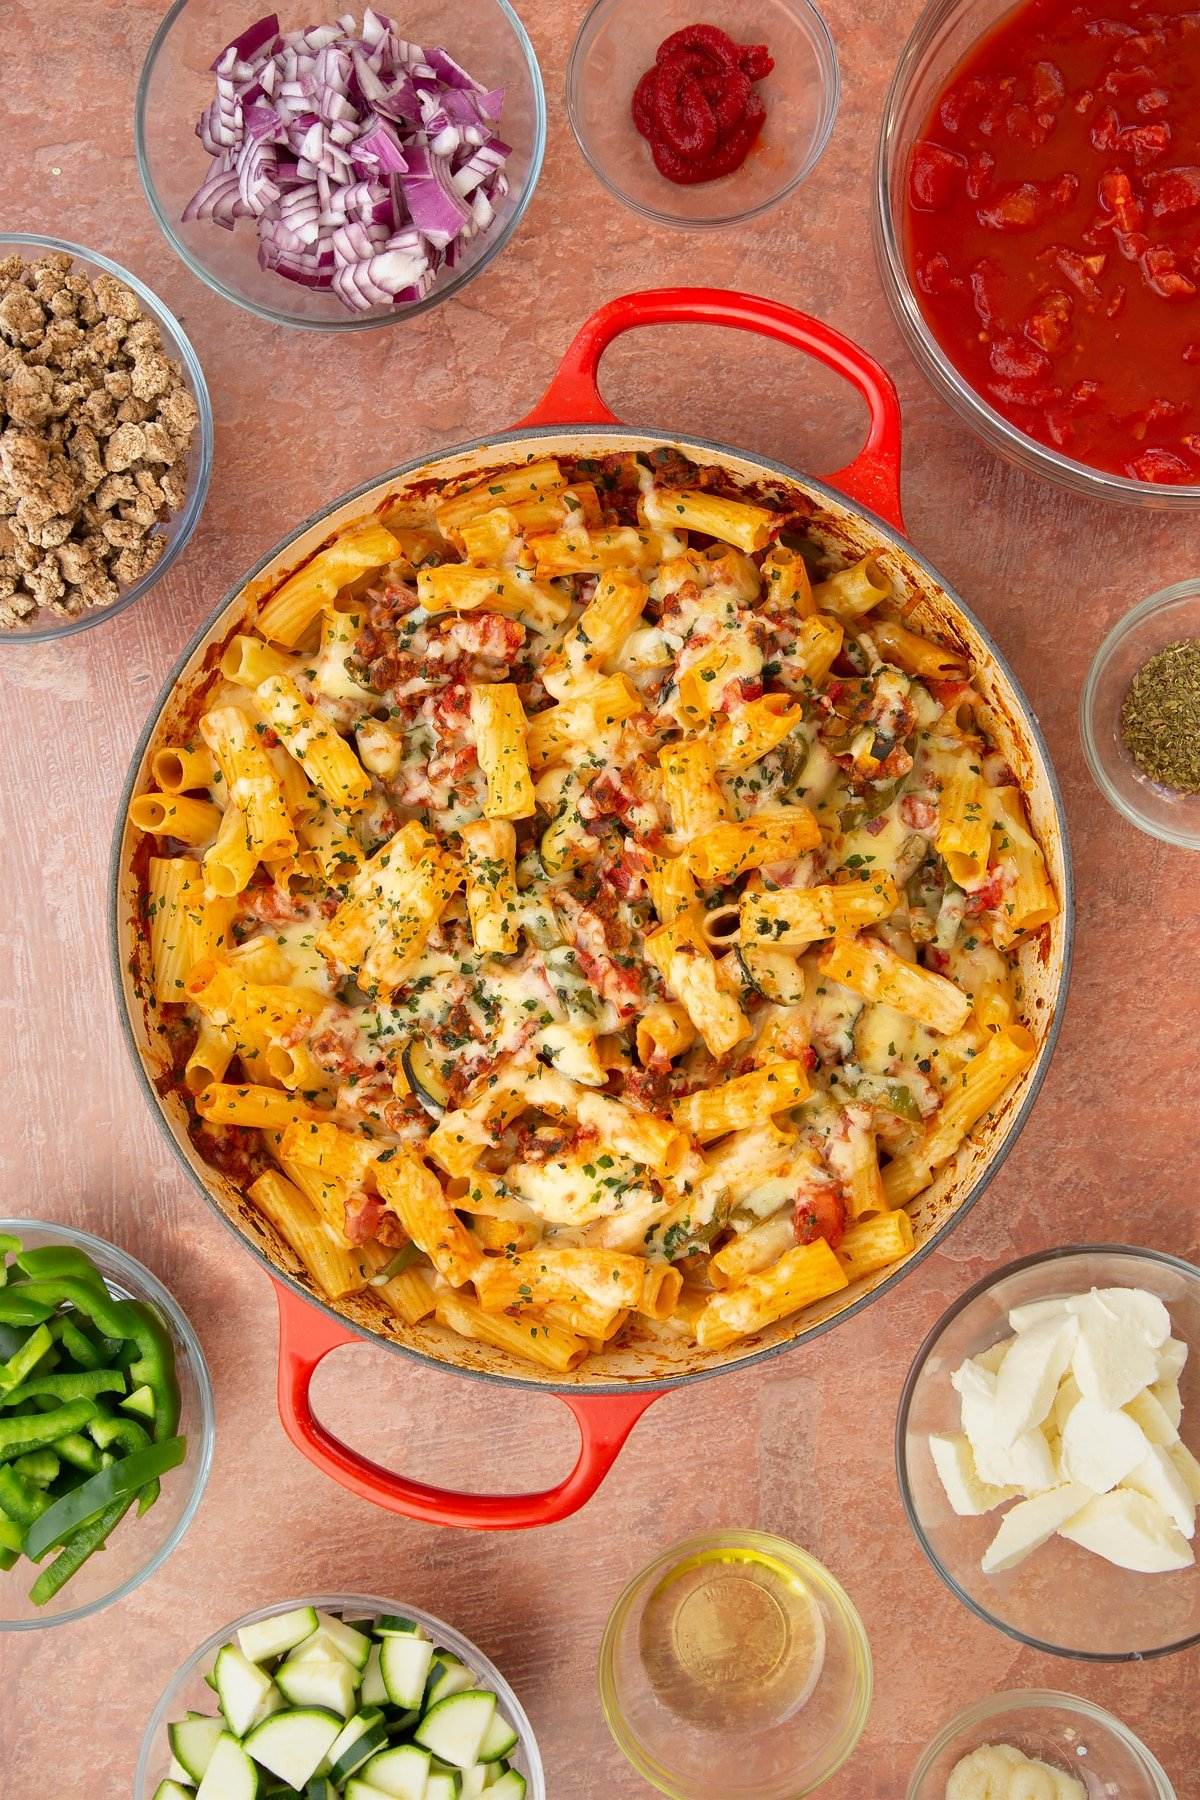 A casserole dish containing freshly baked bolognese al forno. Ingredients surround the dish.